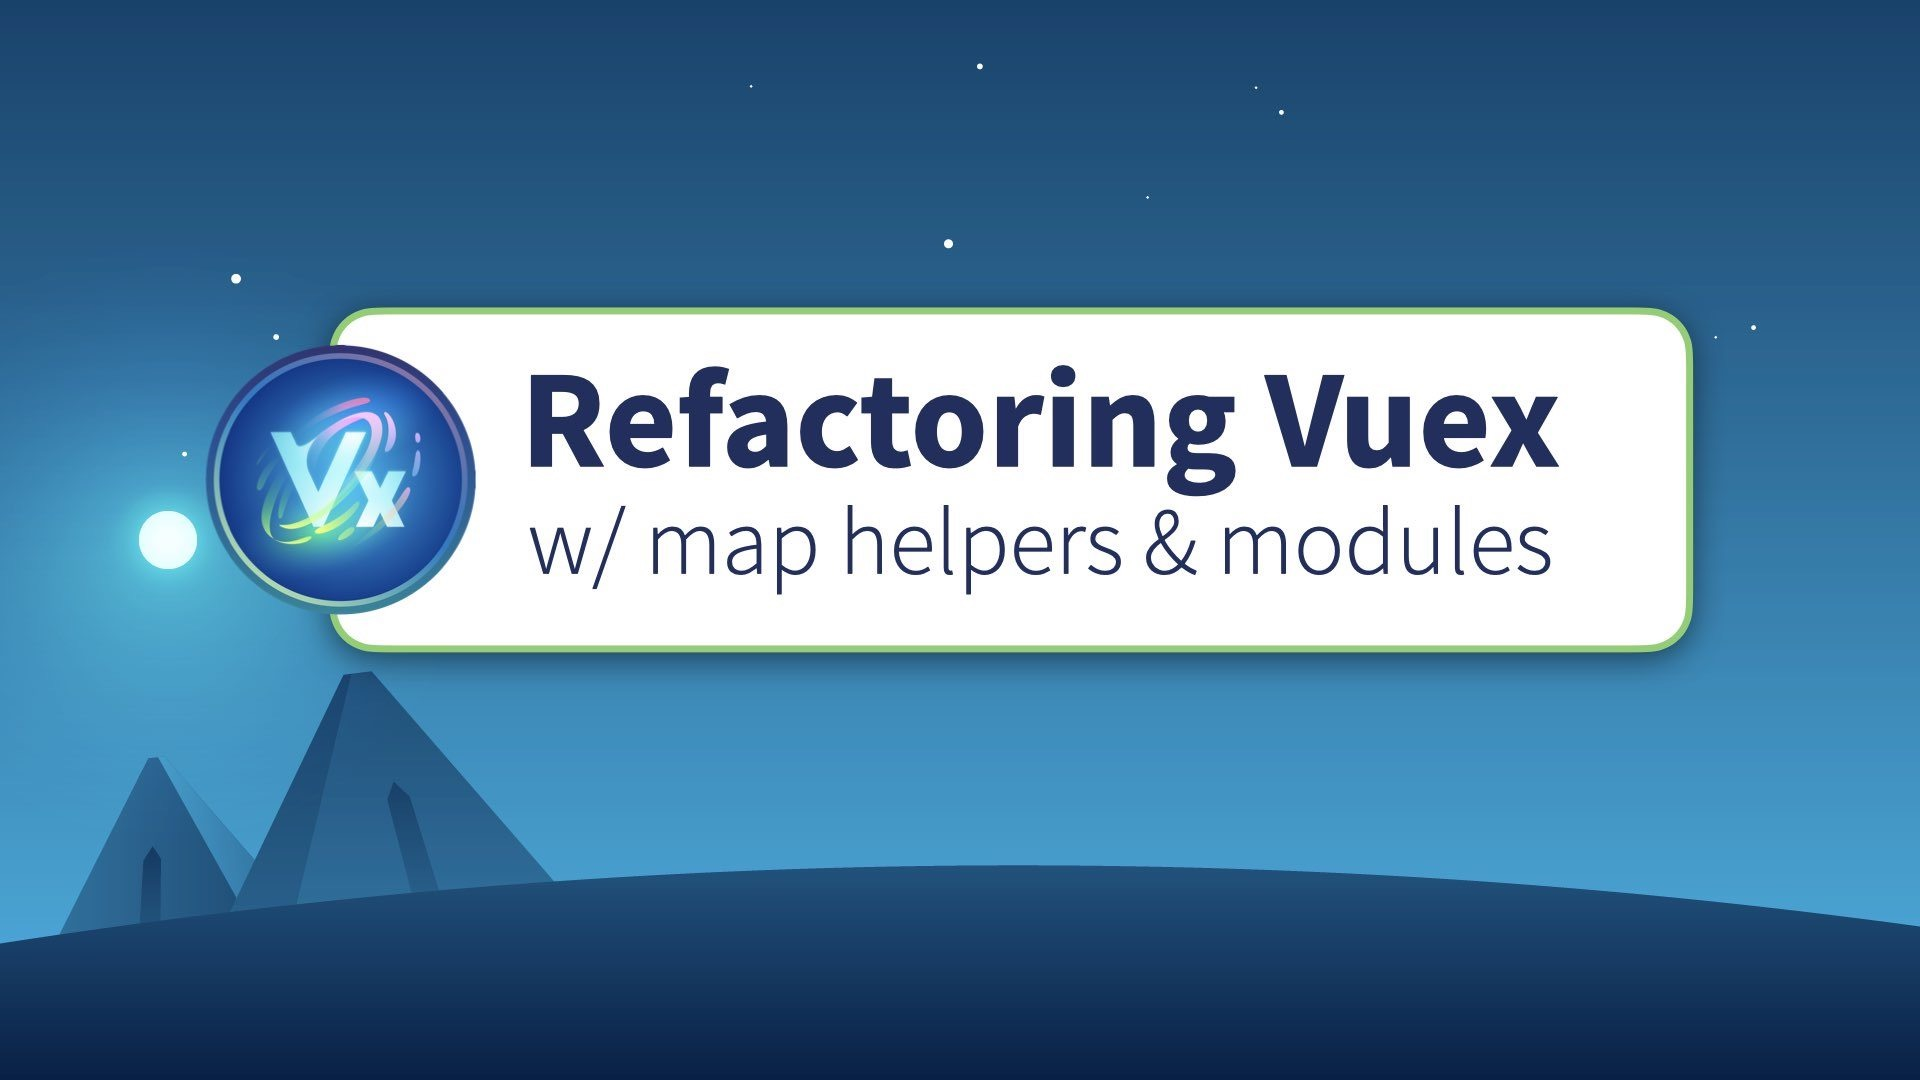 Refactoring Vuex with Map Helpers and Modules